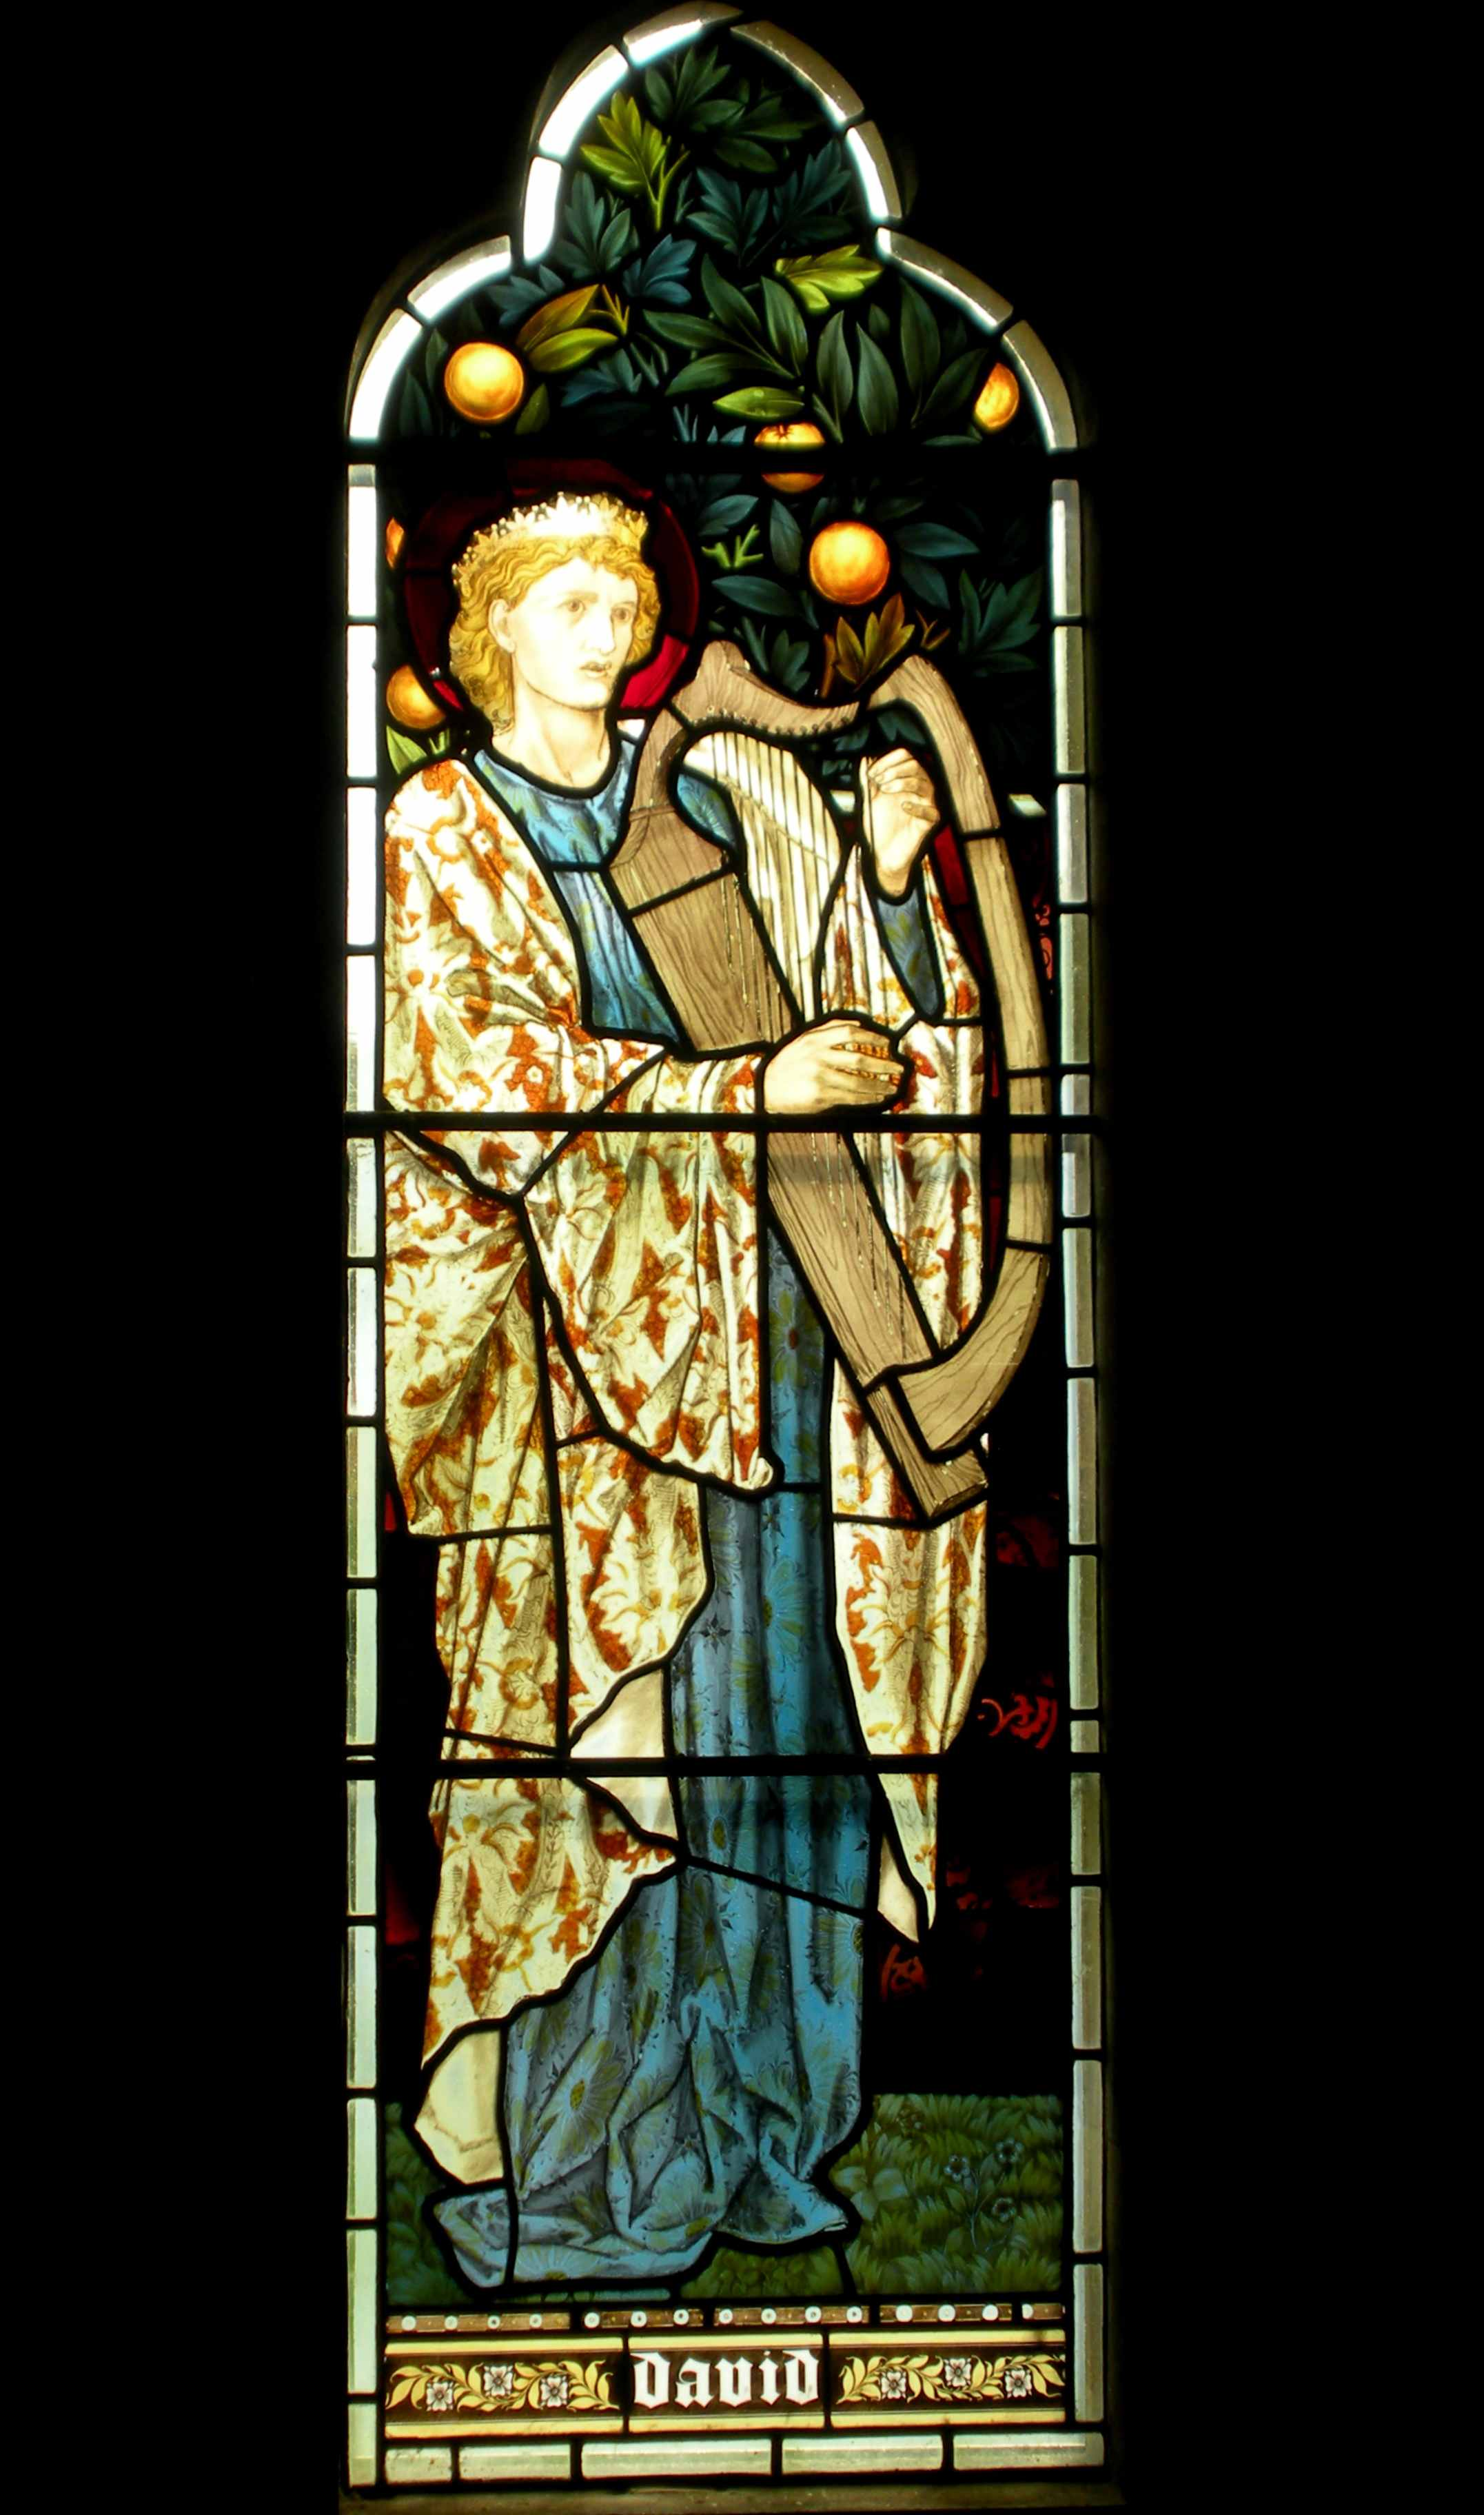 http://upload.wikimedia.org/wikipedia/commons/f/fc/David_Burne-Jones.jpg